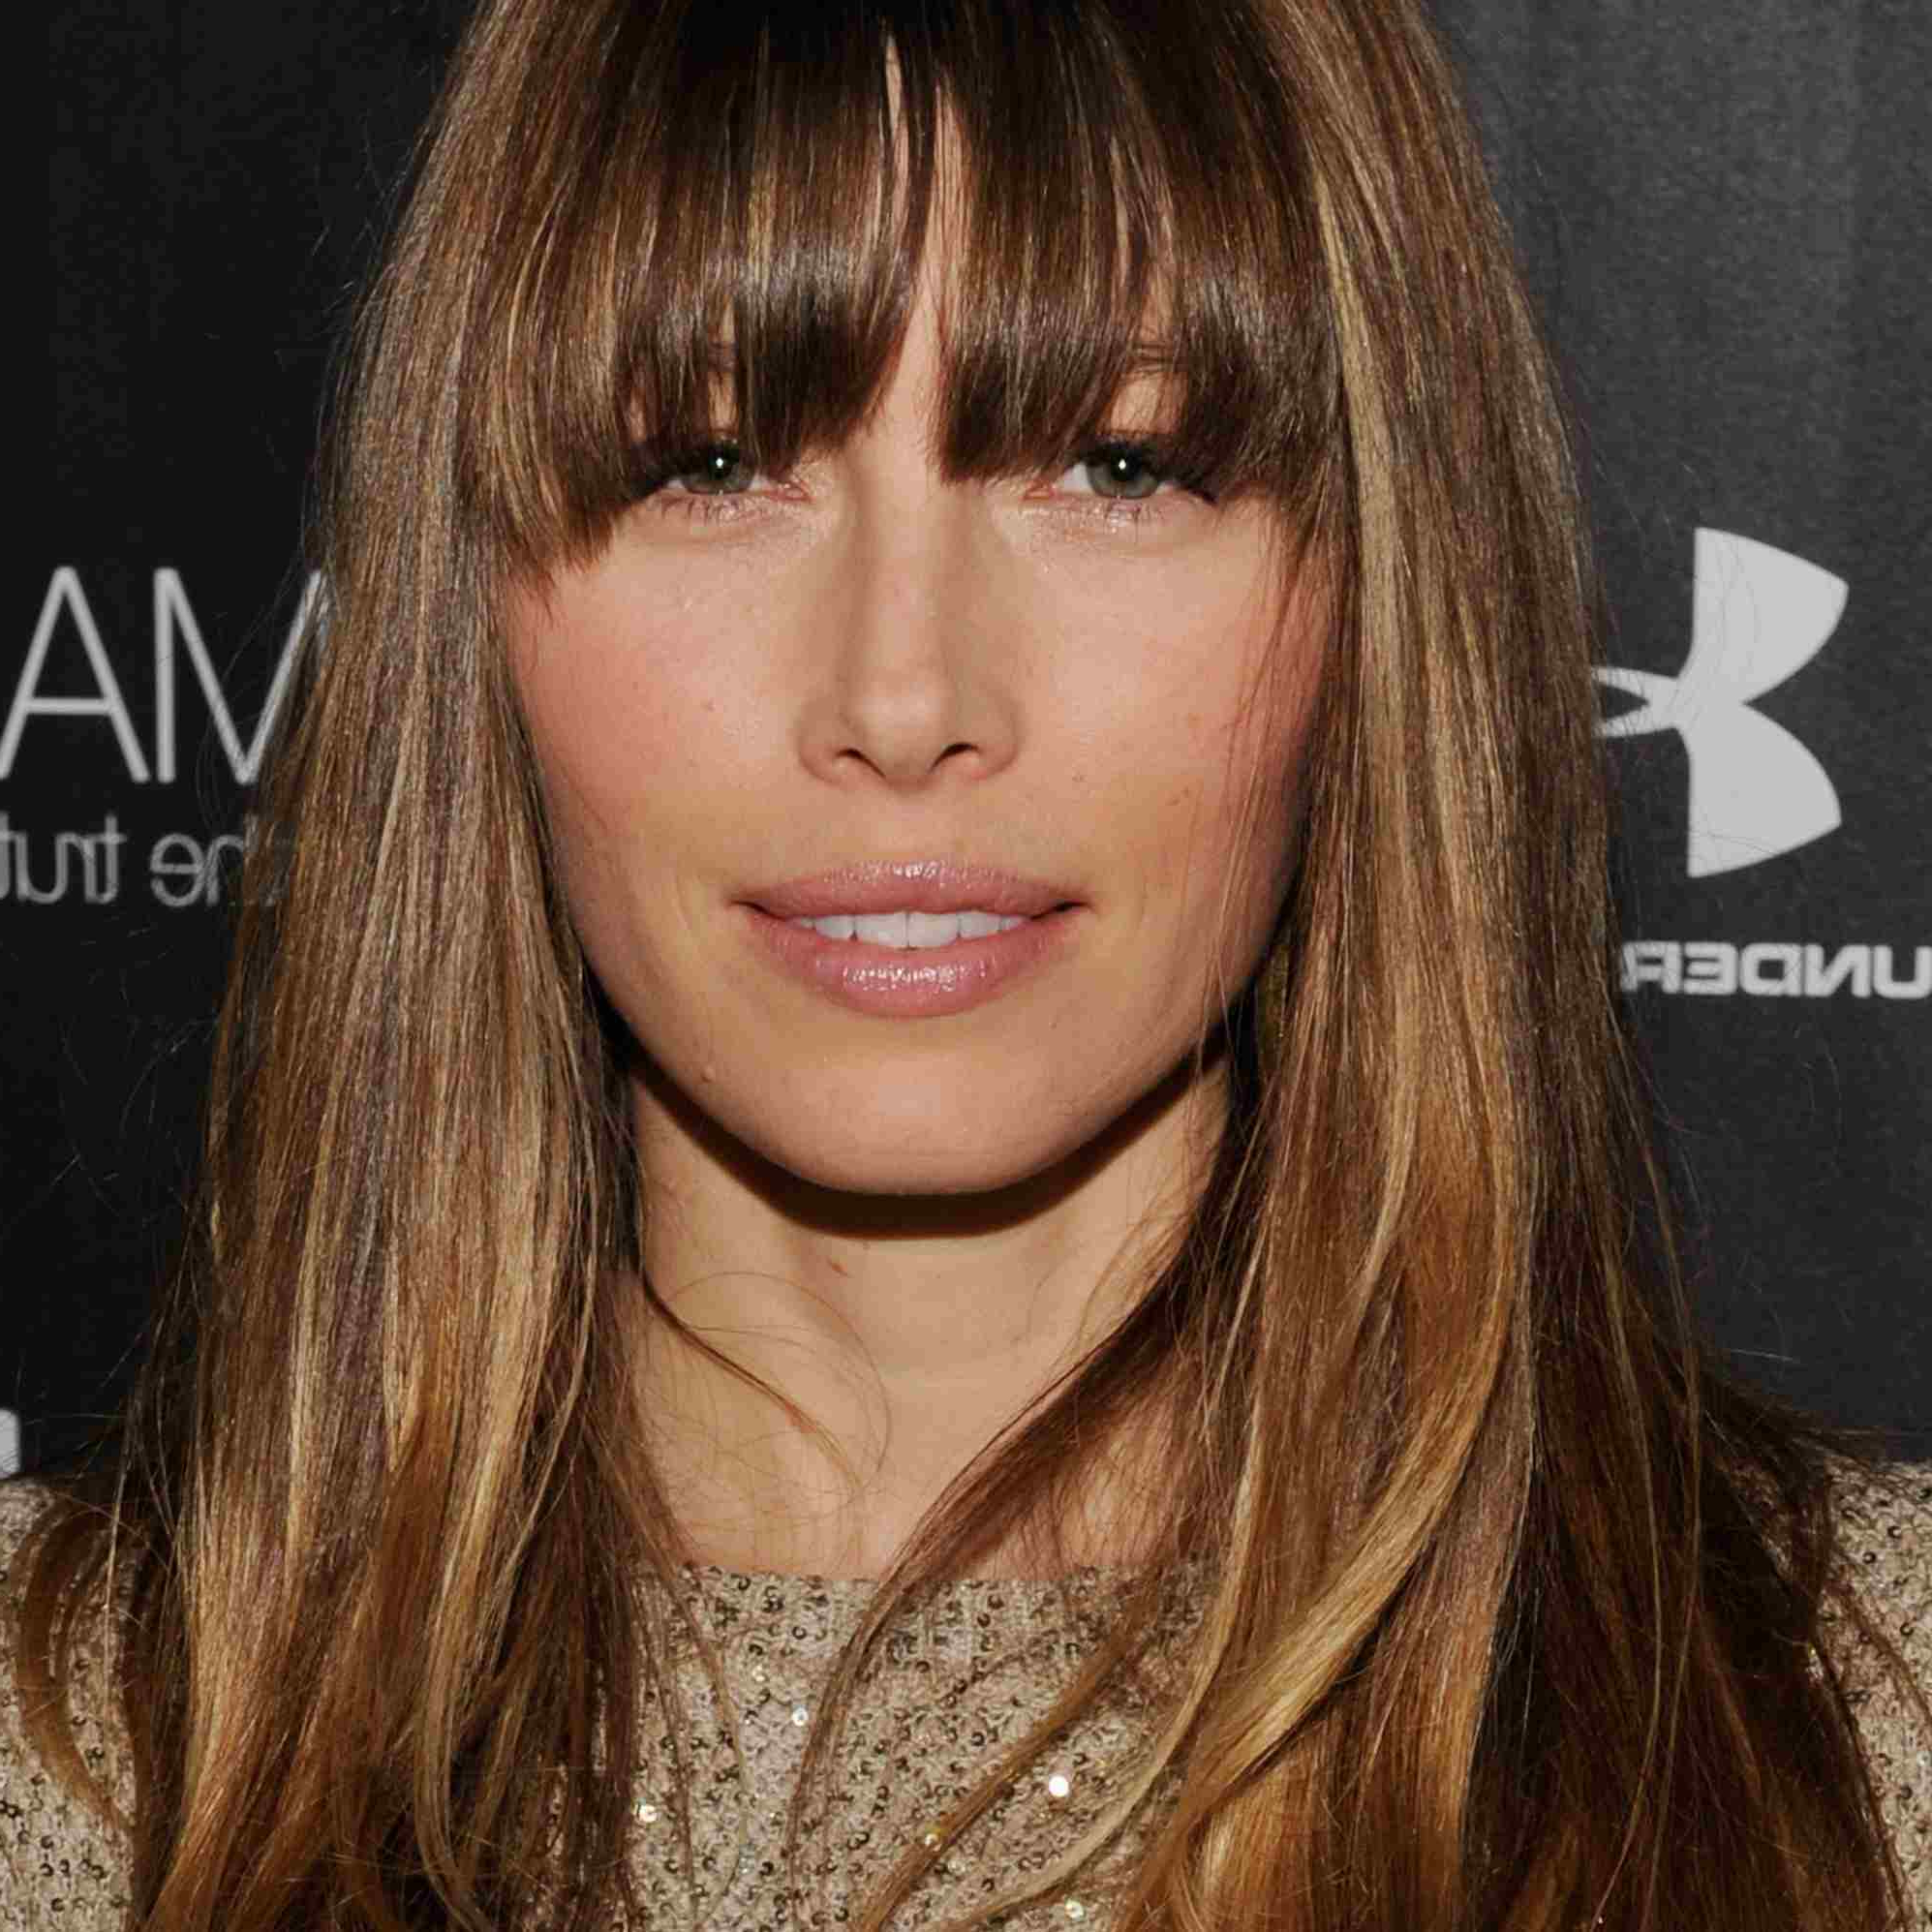 The Best Hairstyles For Women In Their 30s, As Pictured On Intended For V Cut Outgrown Pixie Haircuts (View 17 of 20)